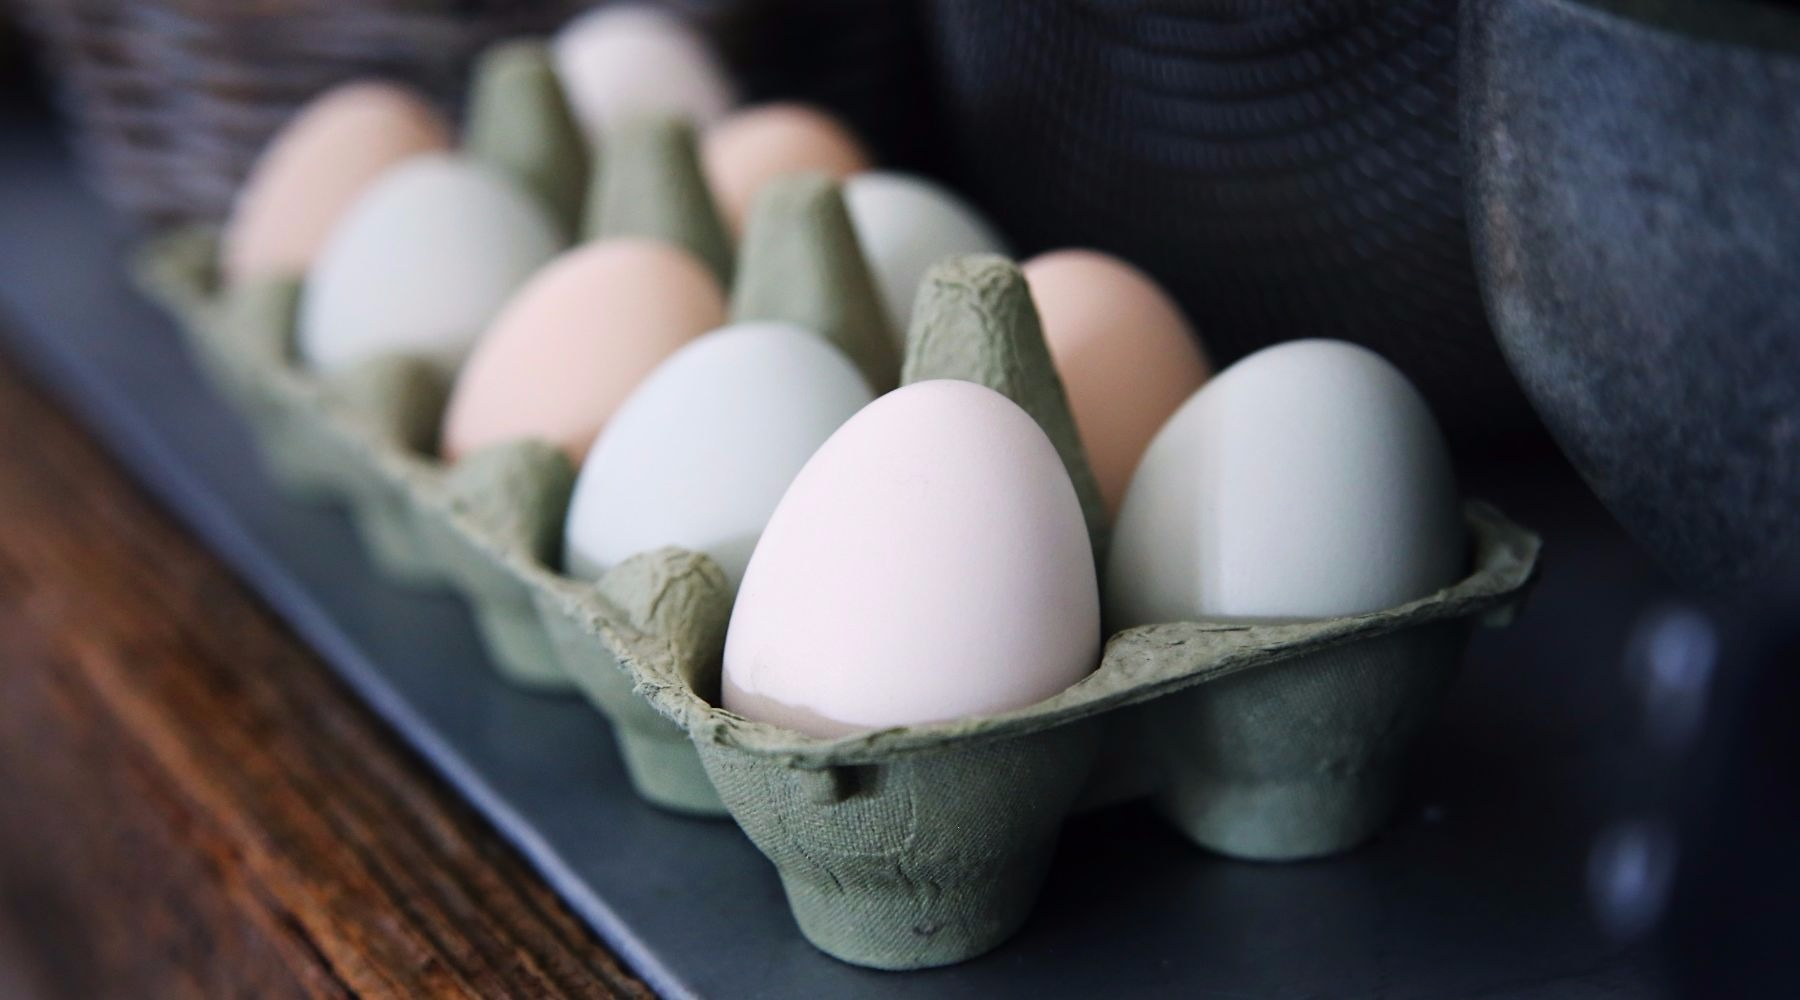 The true cost of eggs